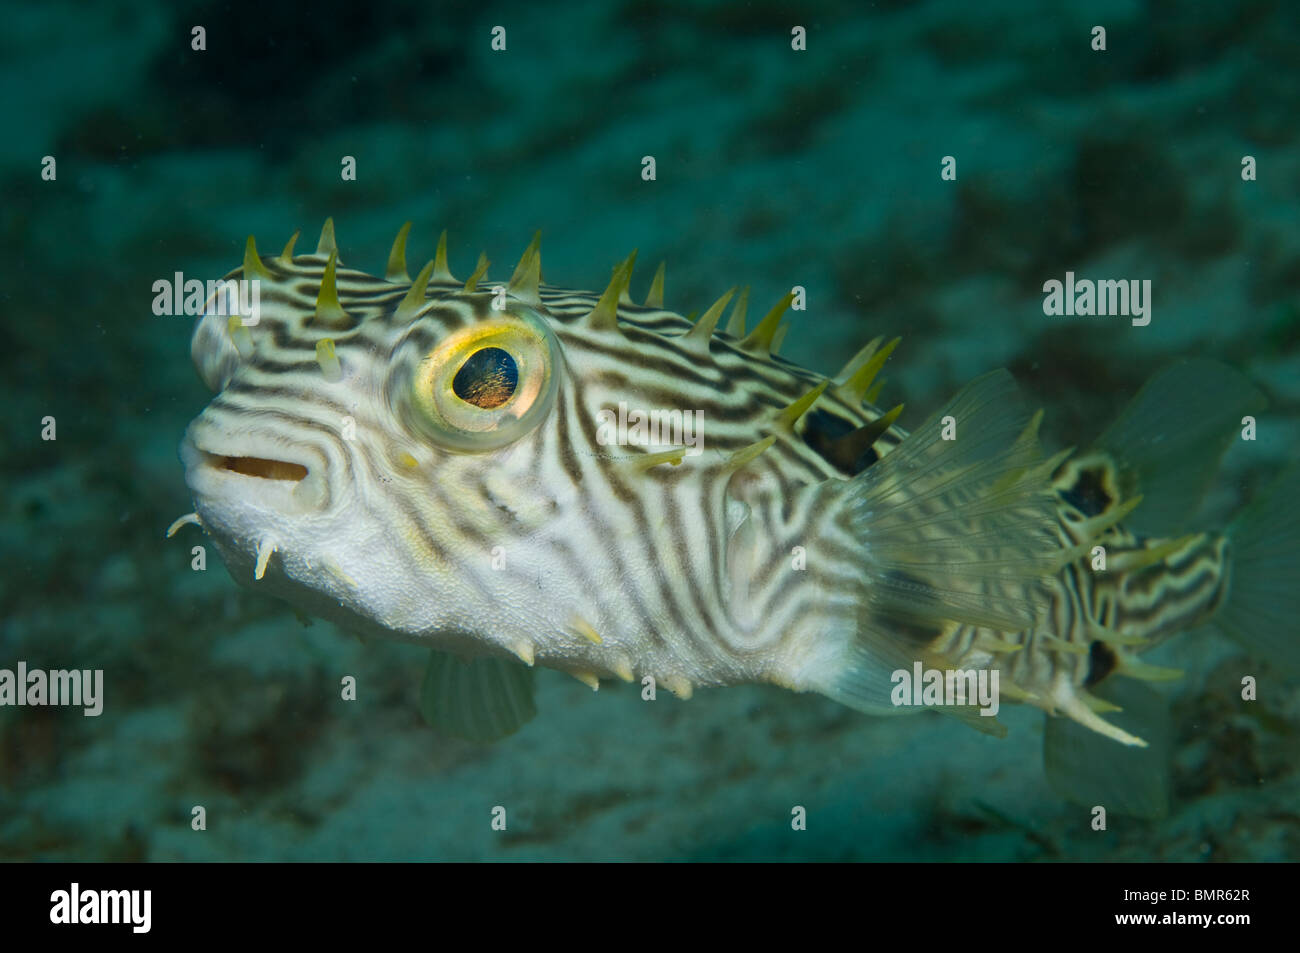 striped burrfish (Chilomycterus schoepfii) in the Lake Worth Lagoon, an estuary near the Palm Beach Inlet, Palm - Stock Image